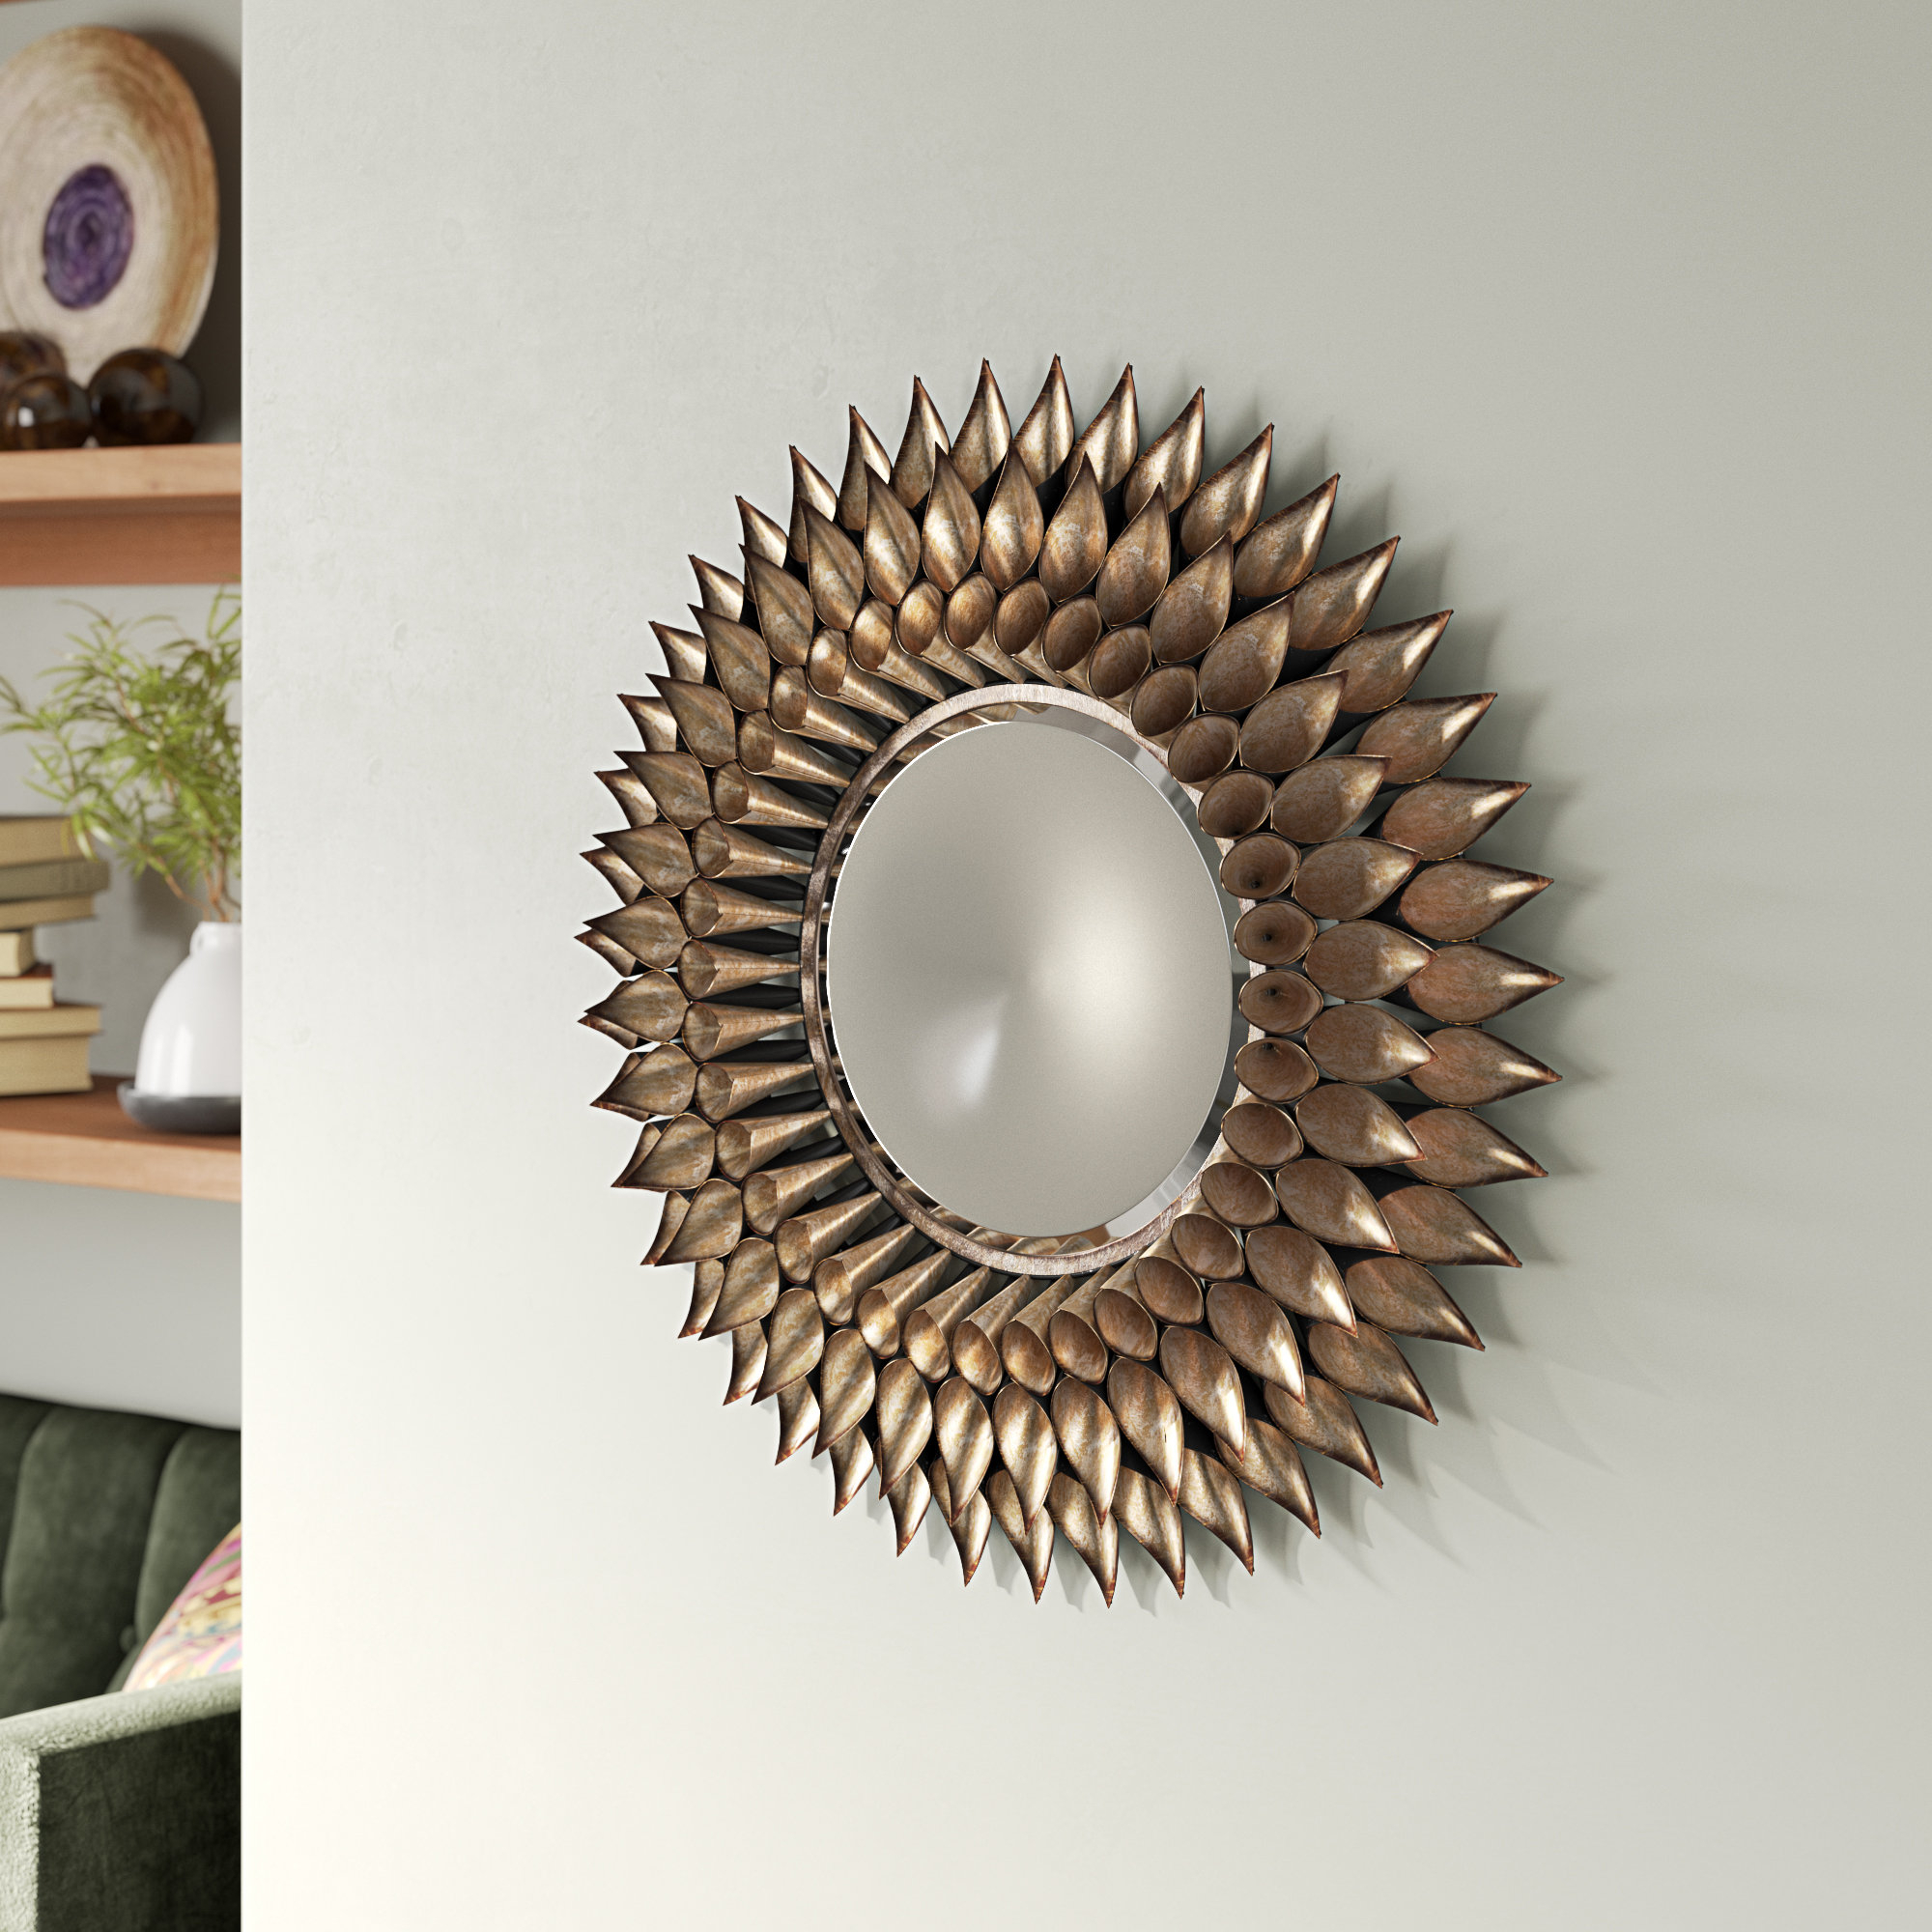 Round Galvanized Metallic Wall Mirrors In Fashionable Round Galvanized And Weathered Silver Decorative Wall Mirror (Gallery 13 of 20)